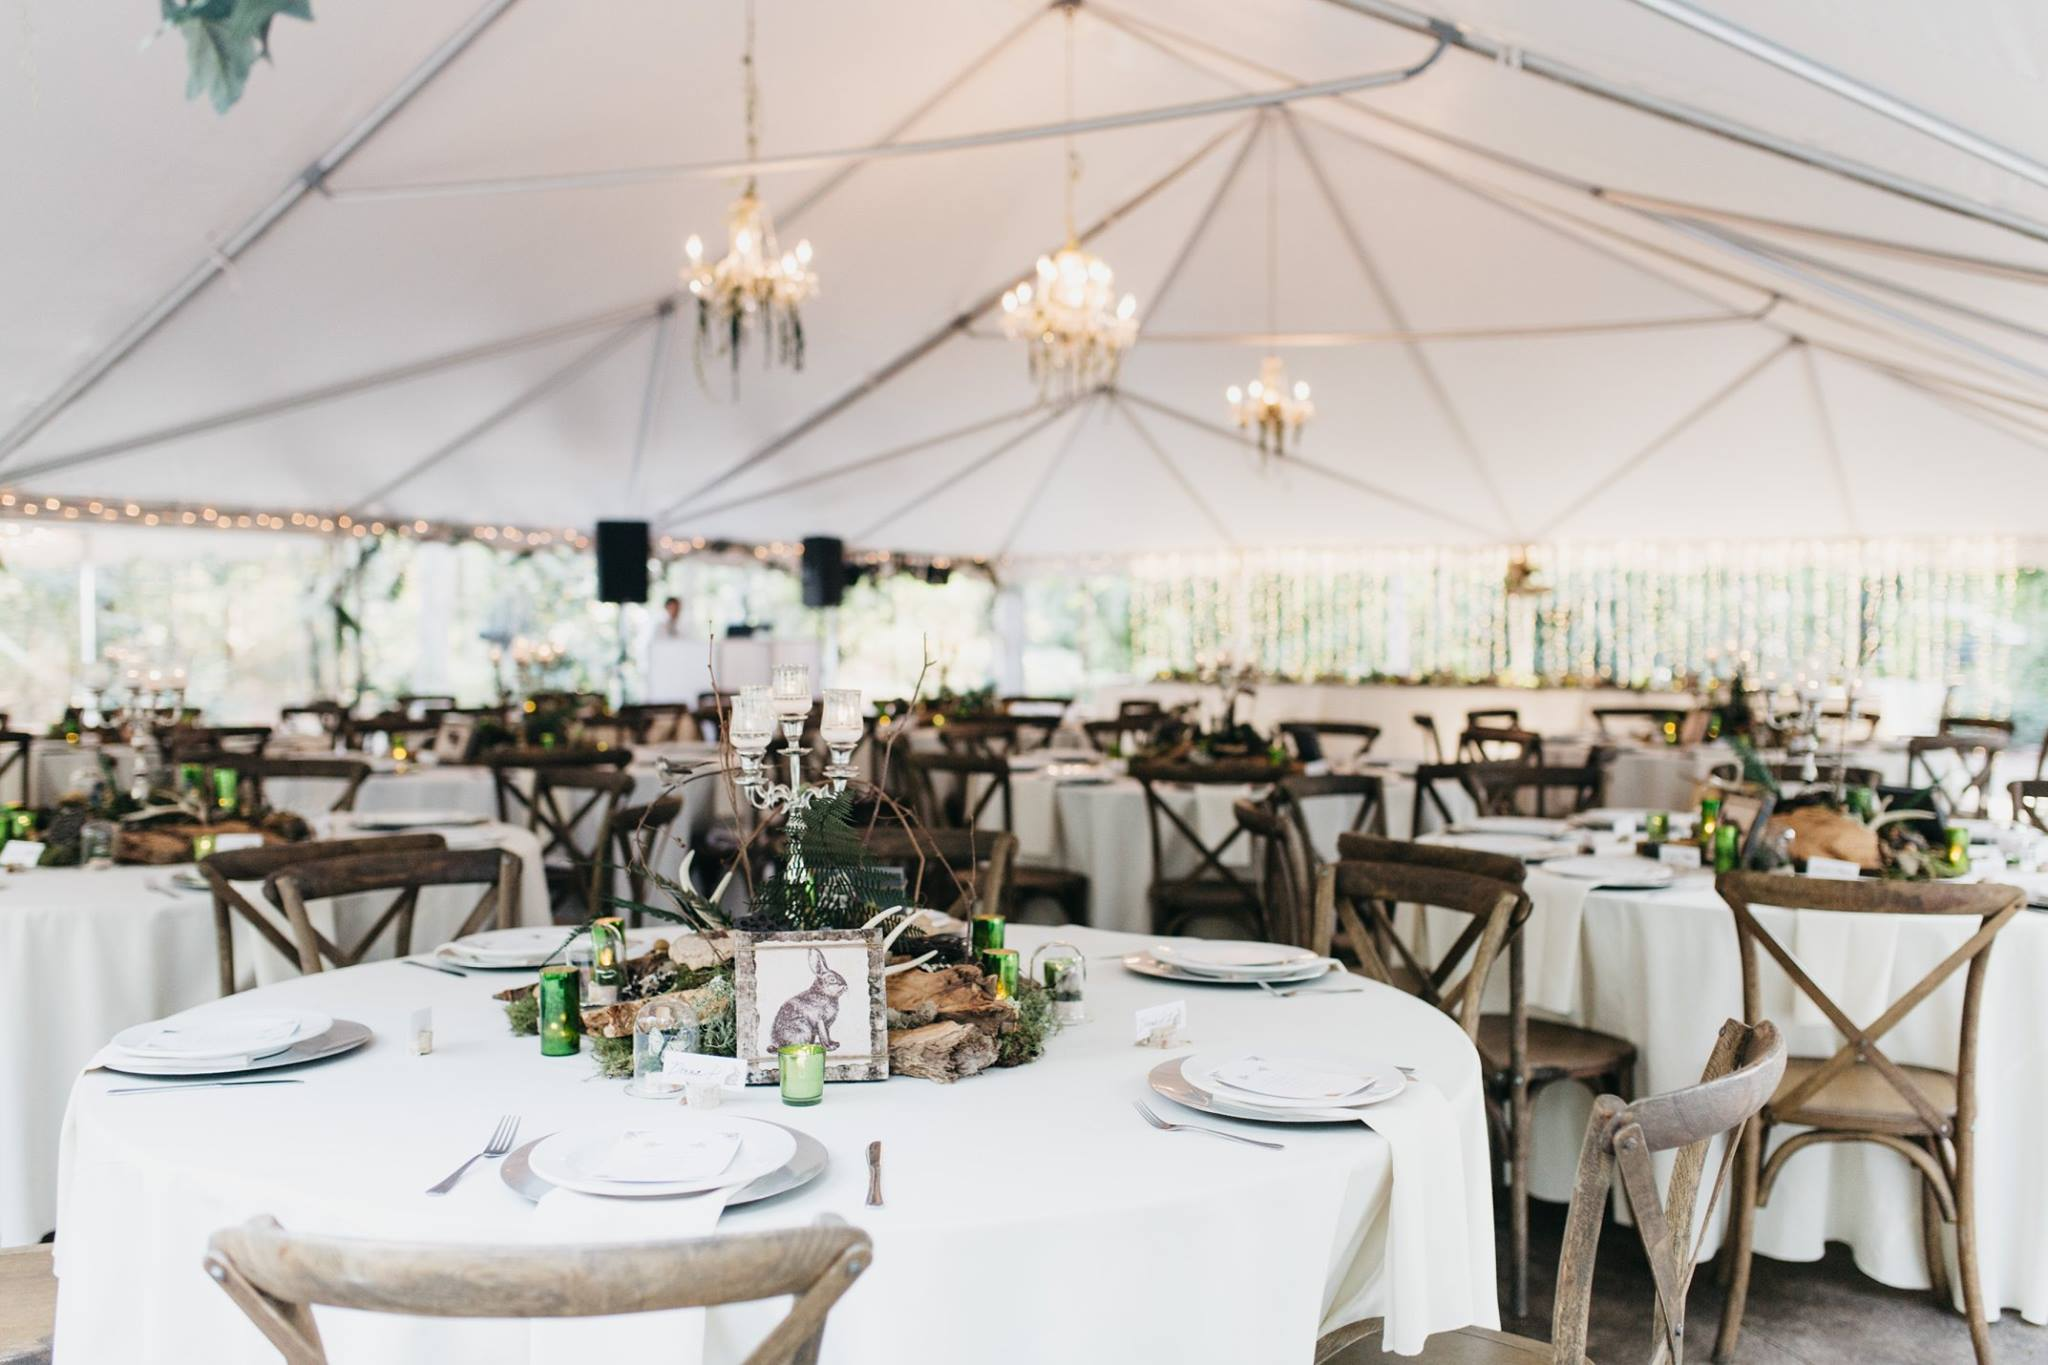 Morning Glory Farms wedding reception with Tuscan chairs.